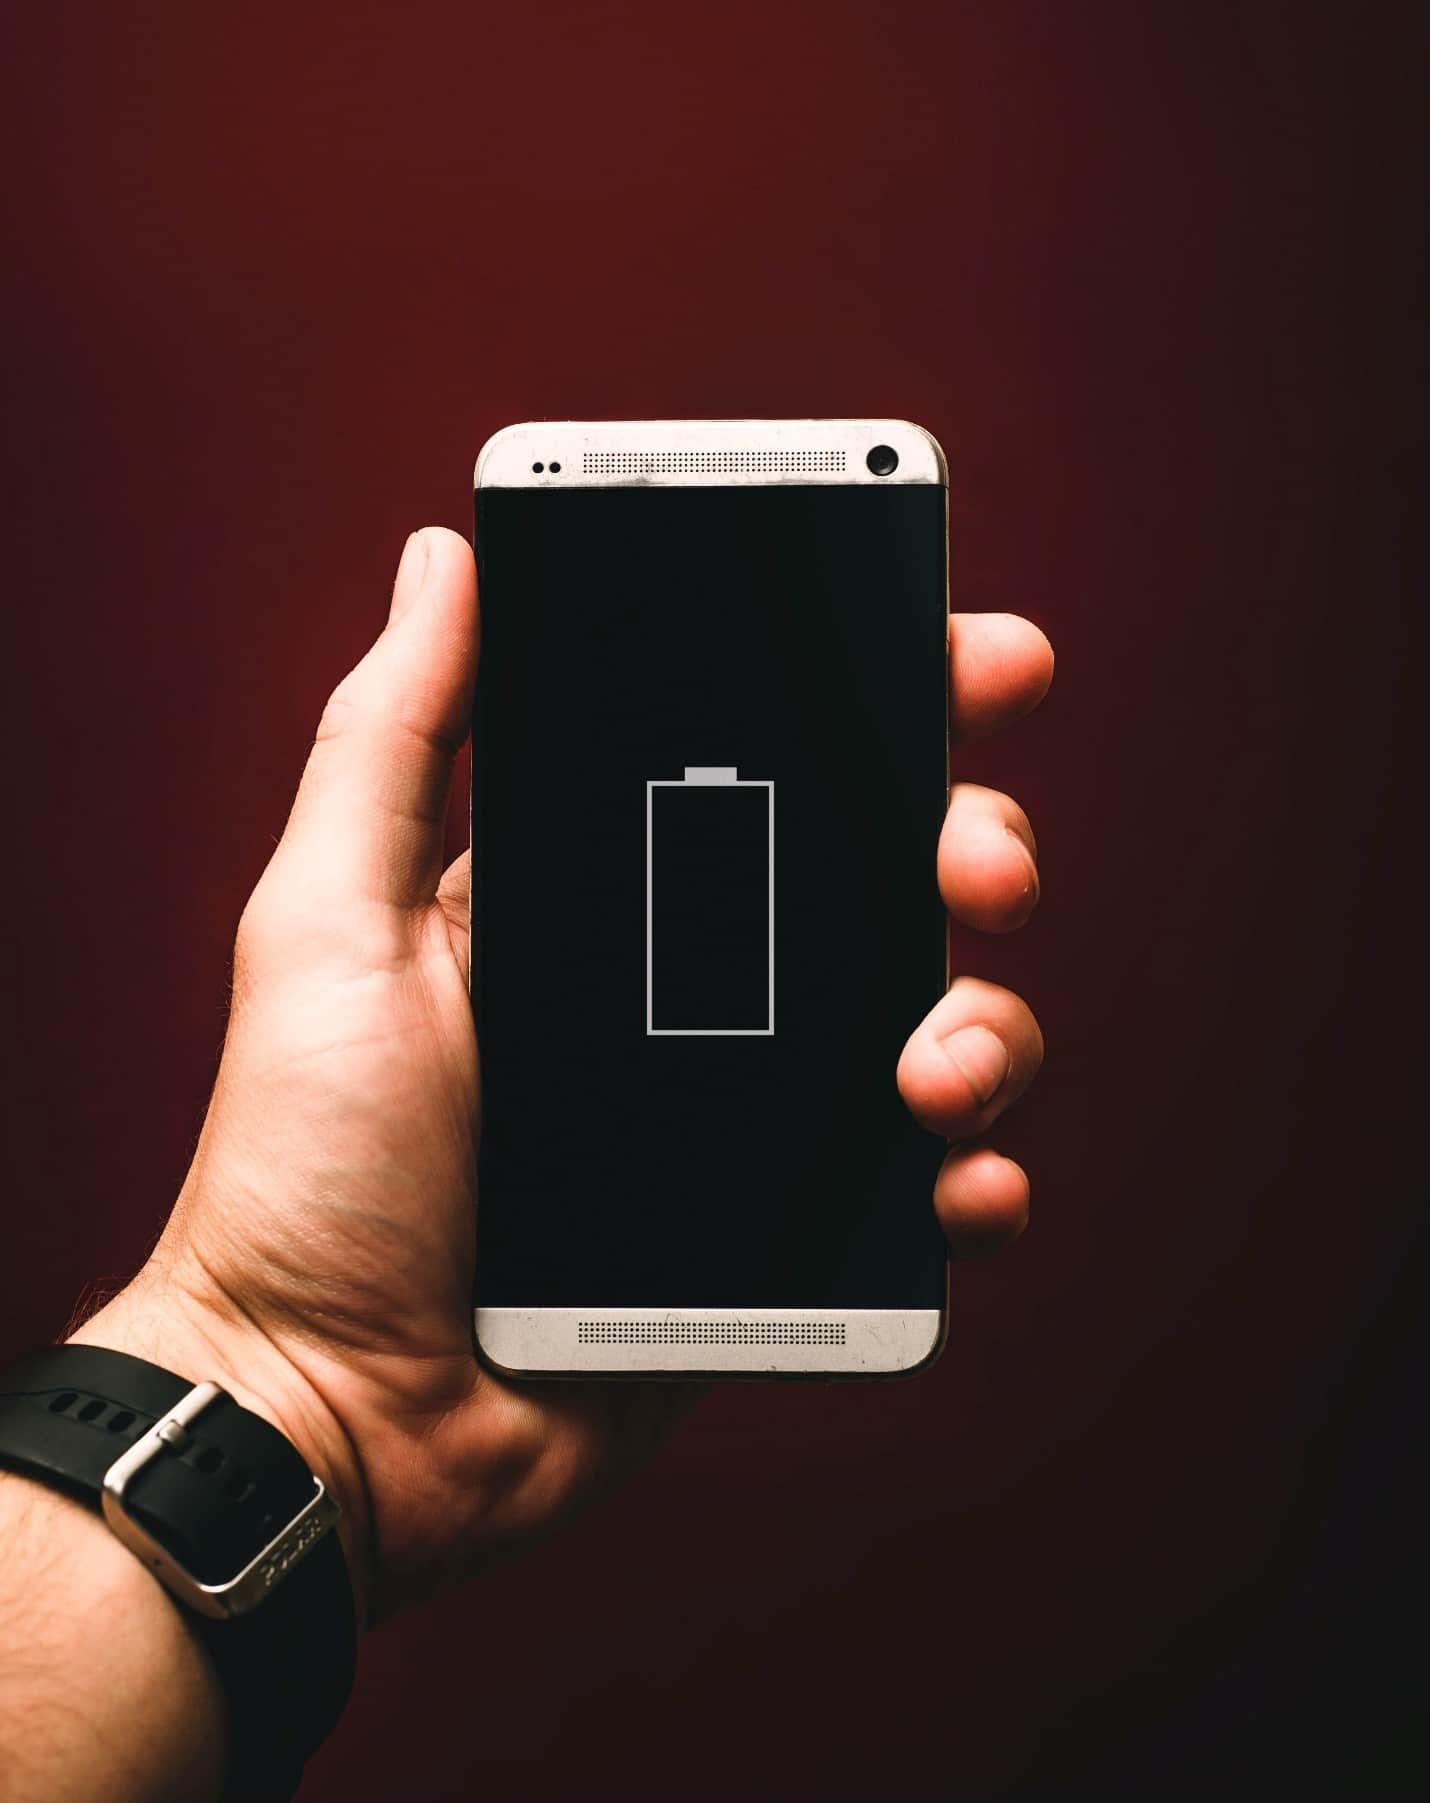 content/ar-ae/images/repository/isc/2020/9910/prolong-your-smartphone-battery-lifespan-1.jpg